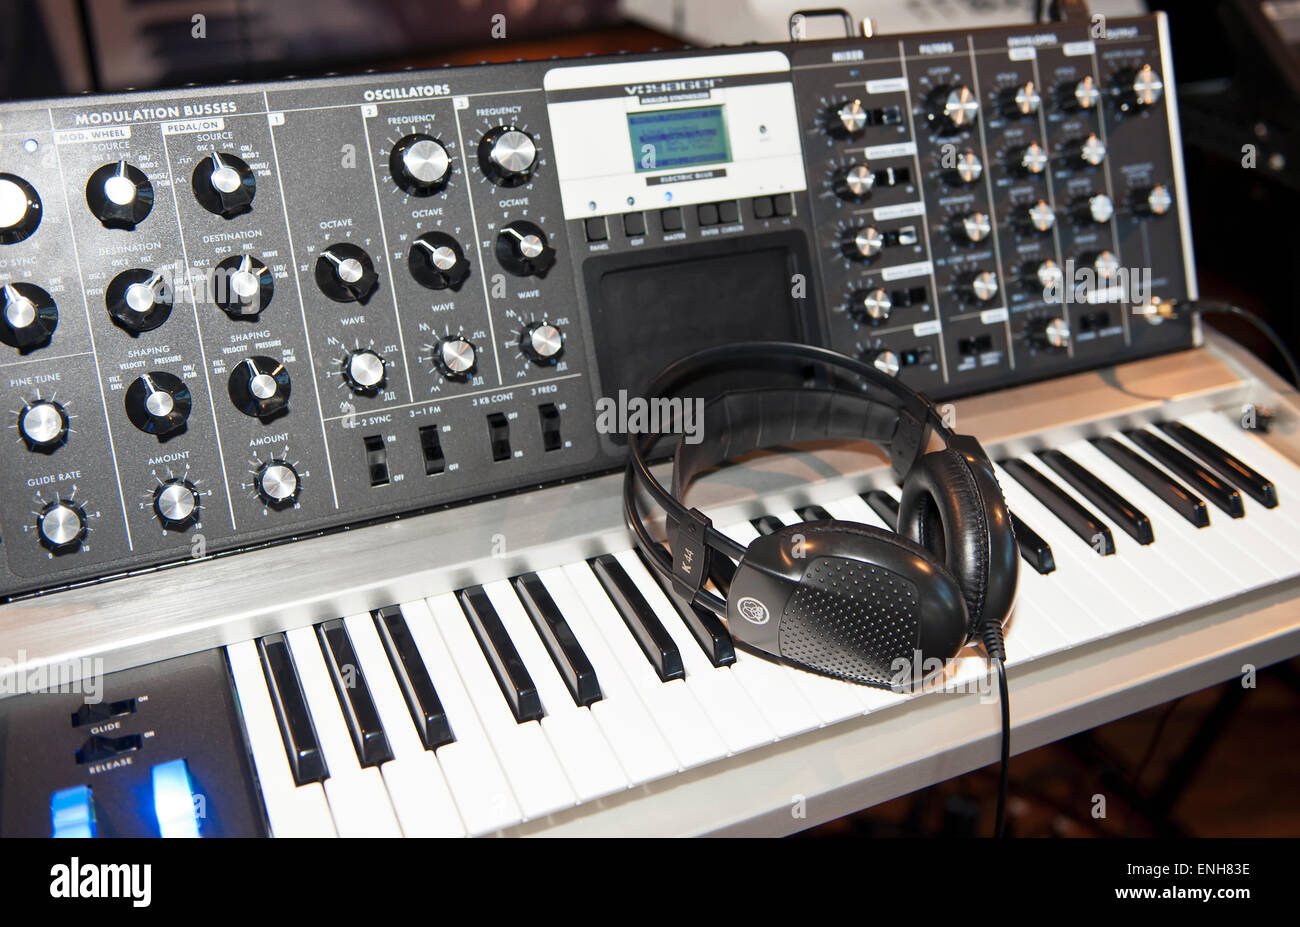 Moog Voyager Analog Synthesizer with headphones, The Moog Factory, Asheville NC. - Stock Image